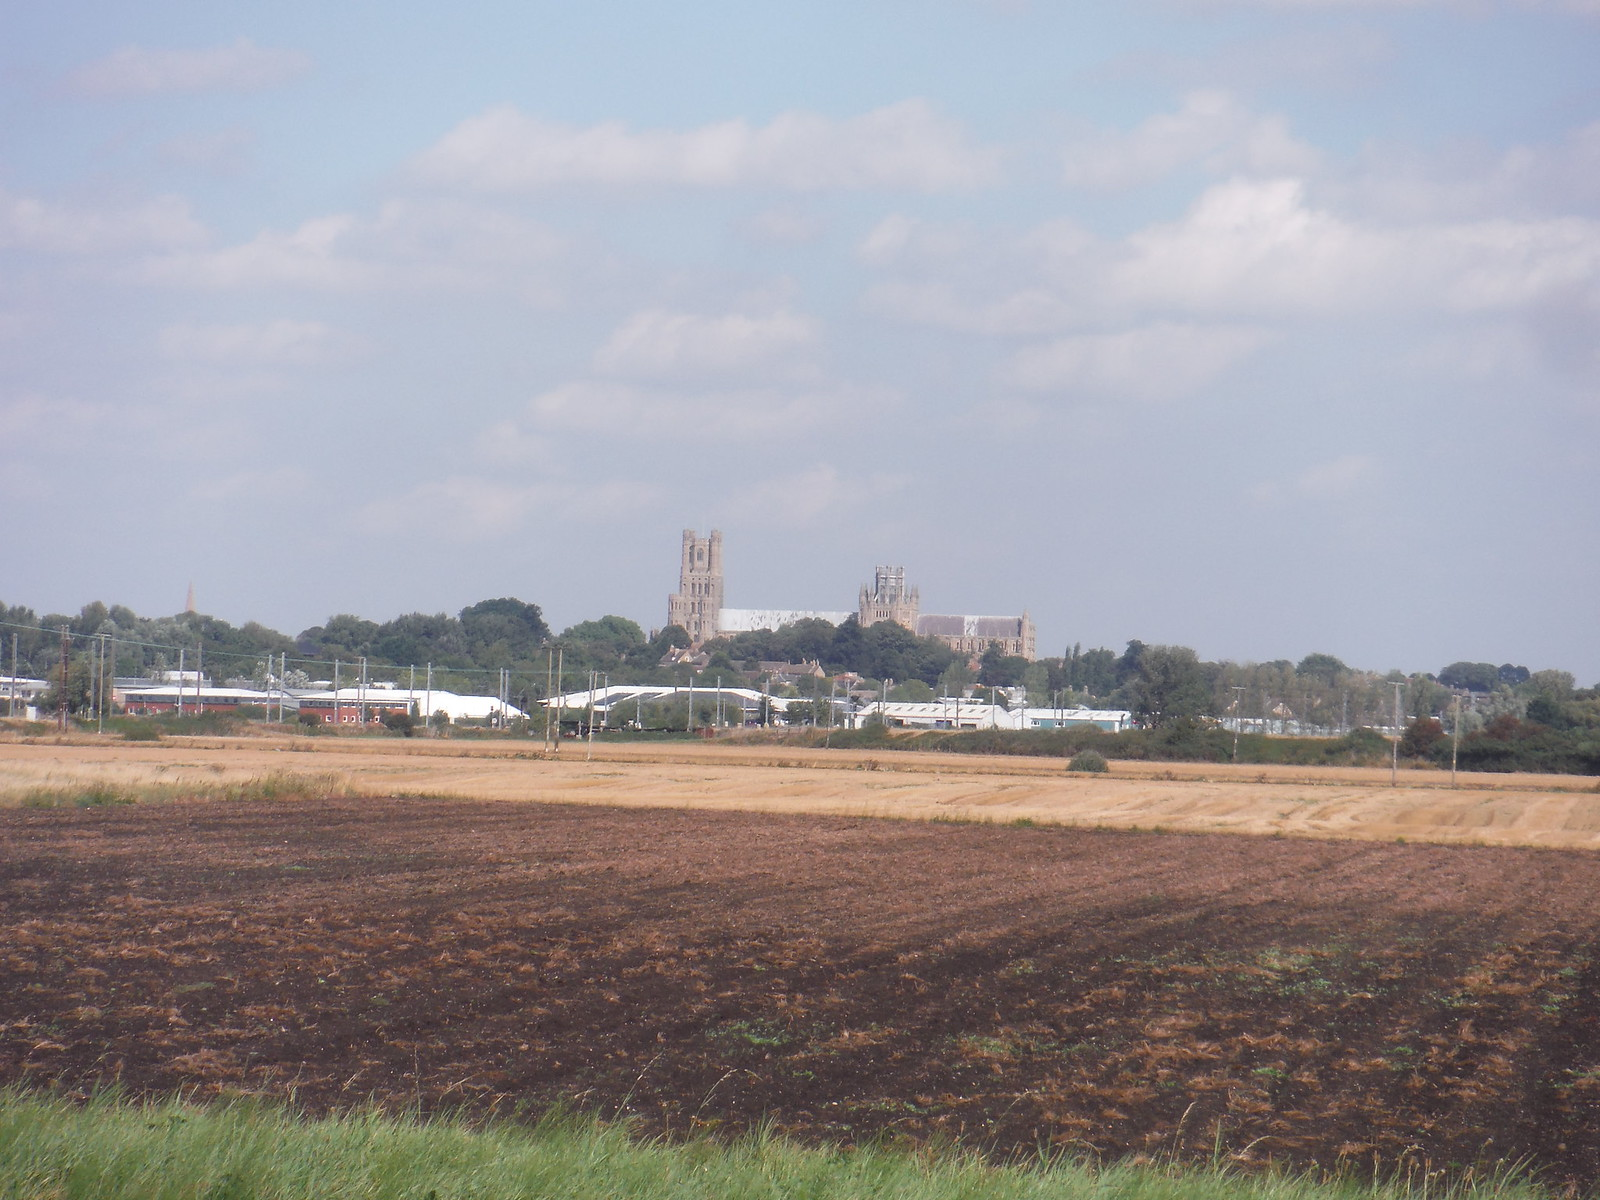 First Sight of Ely Cathedral, from Braham Dock (Drain) SWC Walk 118 Ely Circular